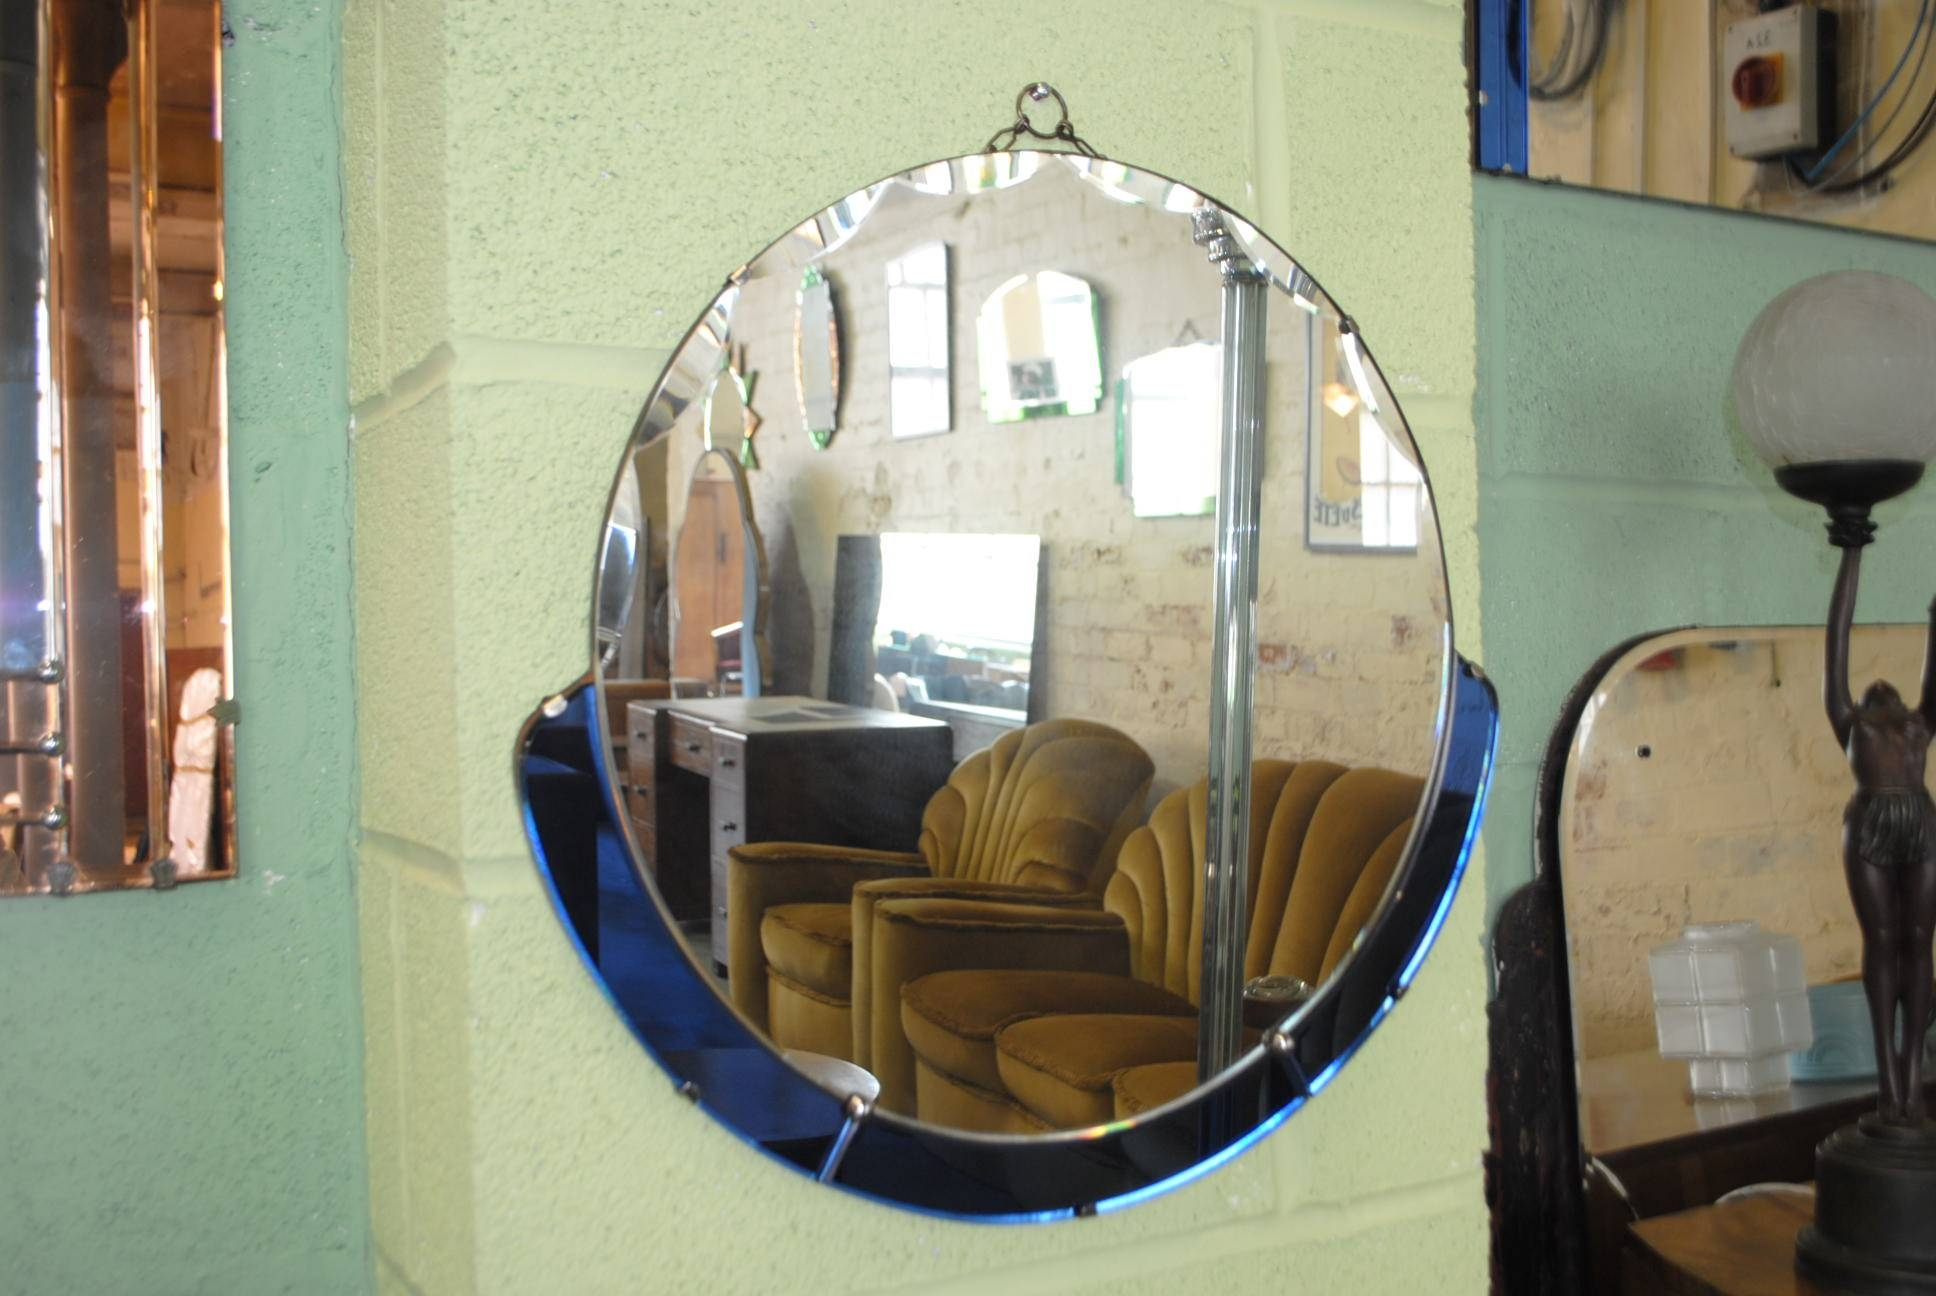 Original Circular And Blue Art Deco Mirror || Cloud 9, Art Deco for Original Art Deco Mirrors (Image 18 of 25)